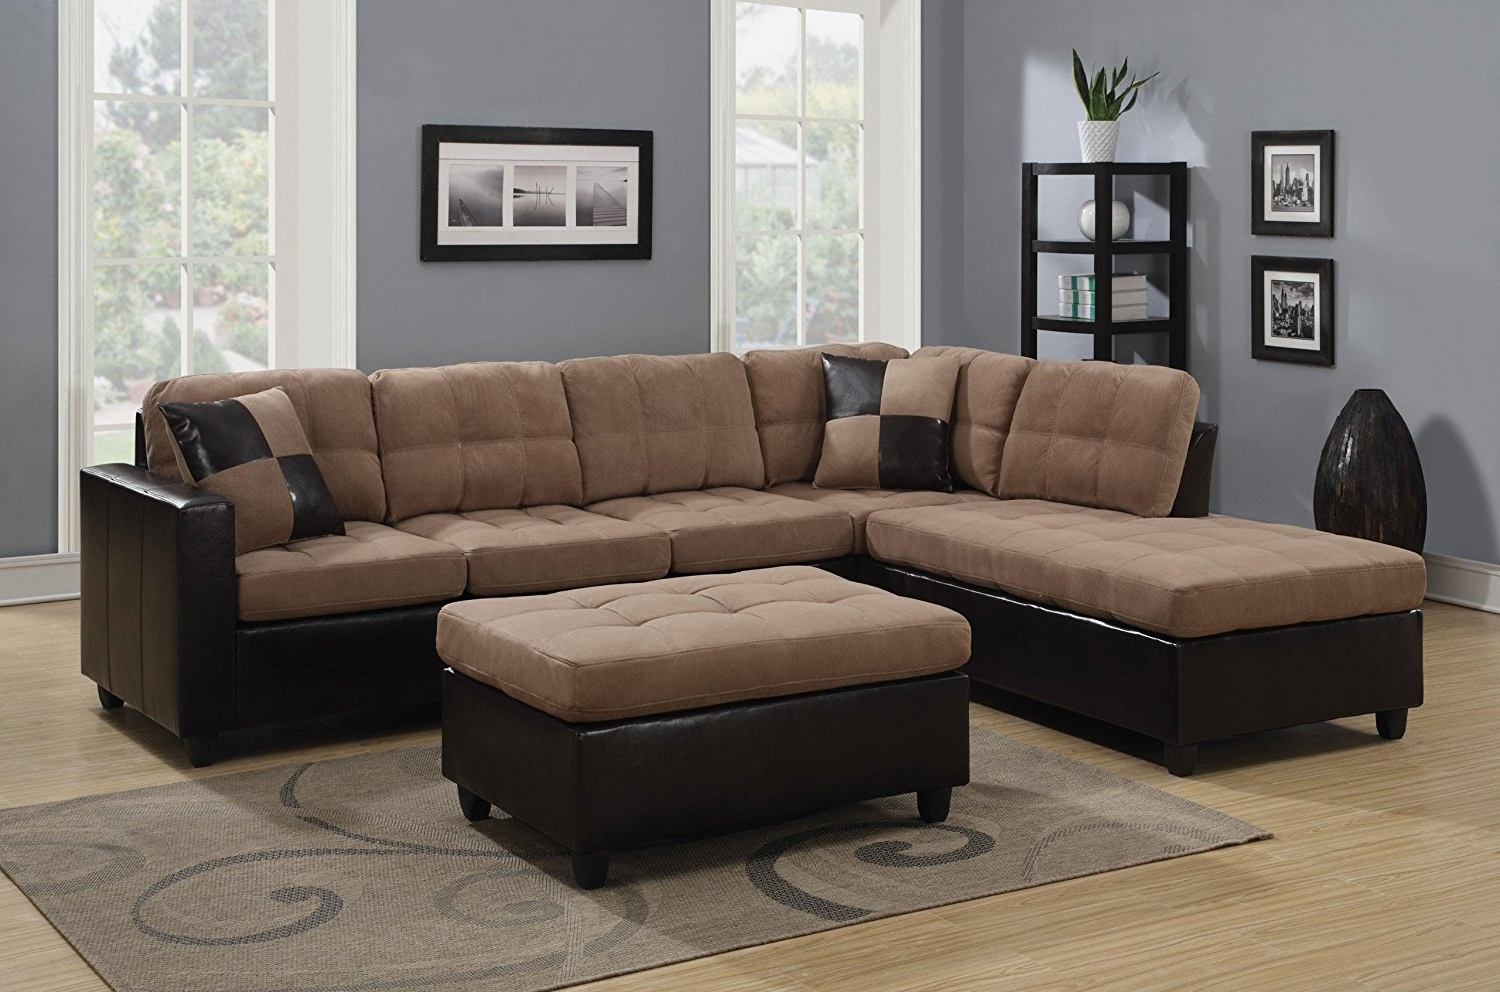 Living Spaces Sectional Sofas Within Most Recent Living Room: Shop Sectional Sofas Leather Sectionals Living Spaces (View 8 of 15)